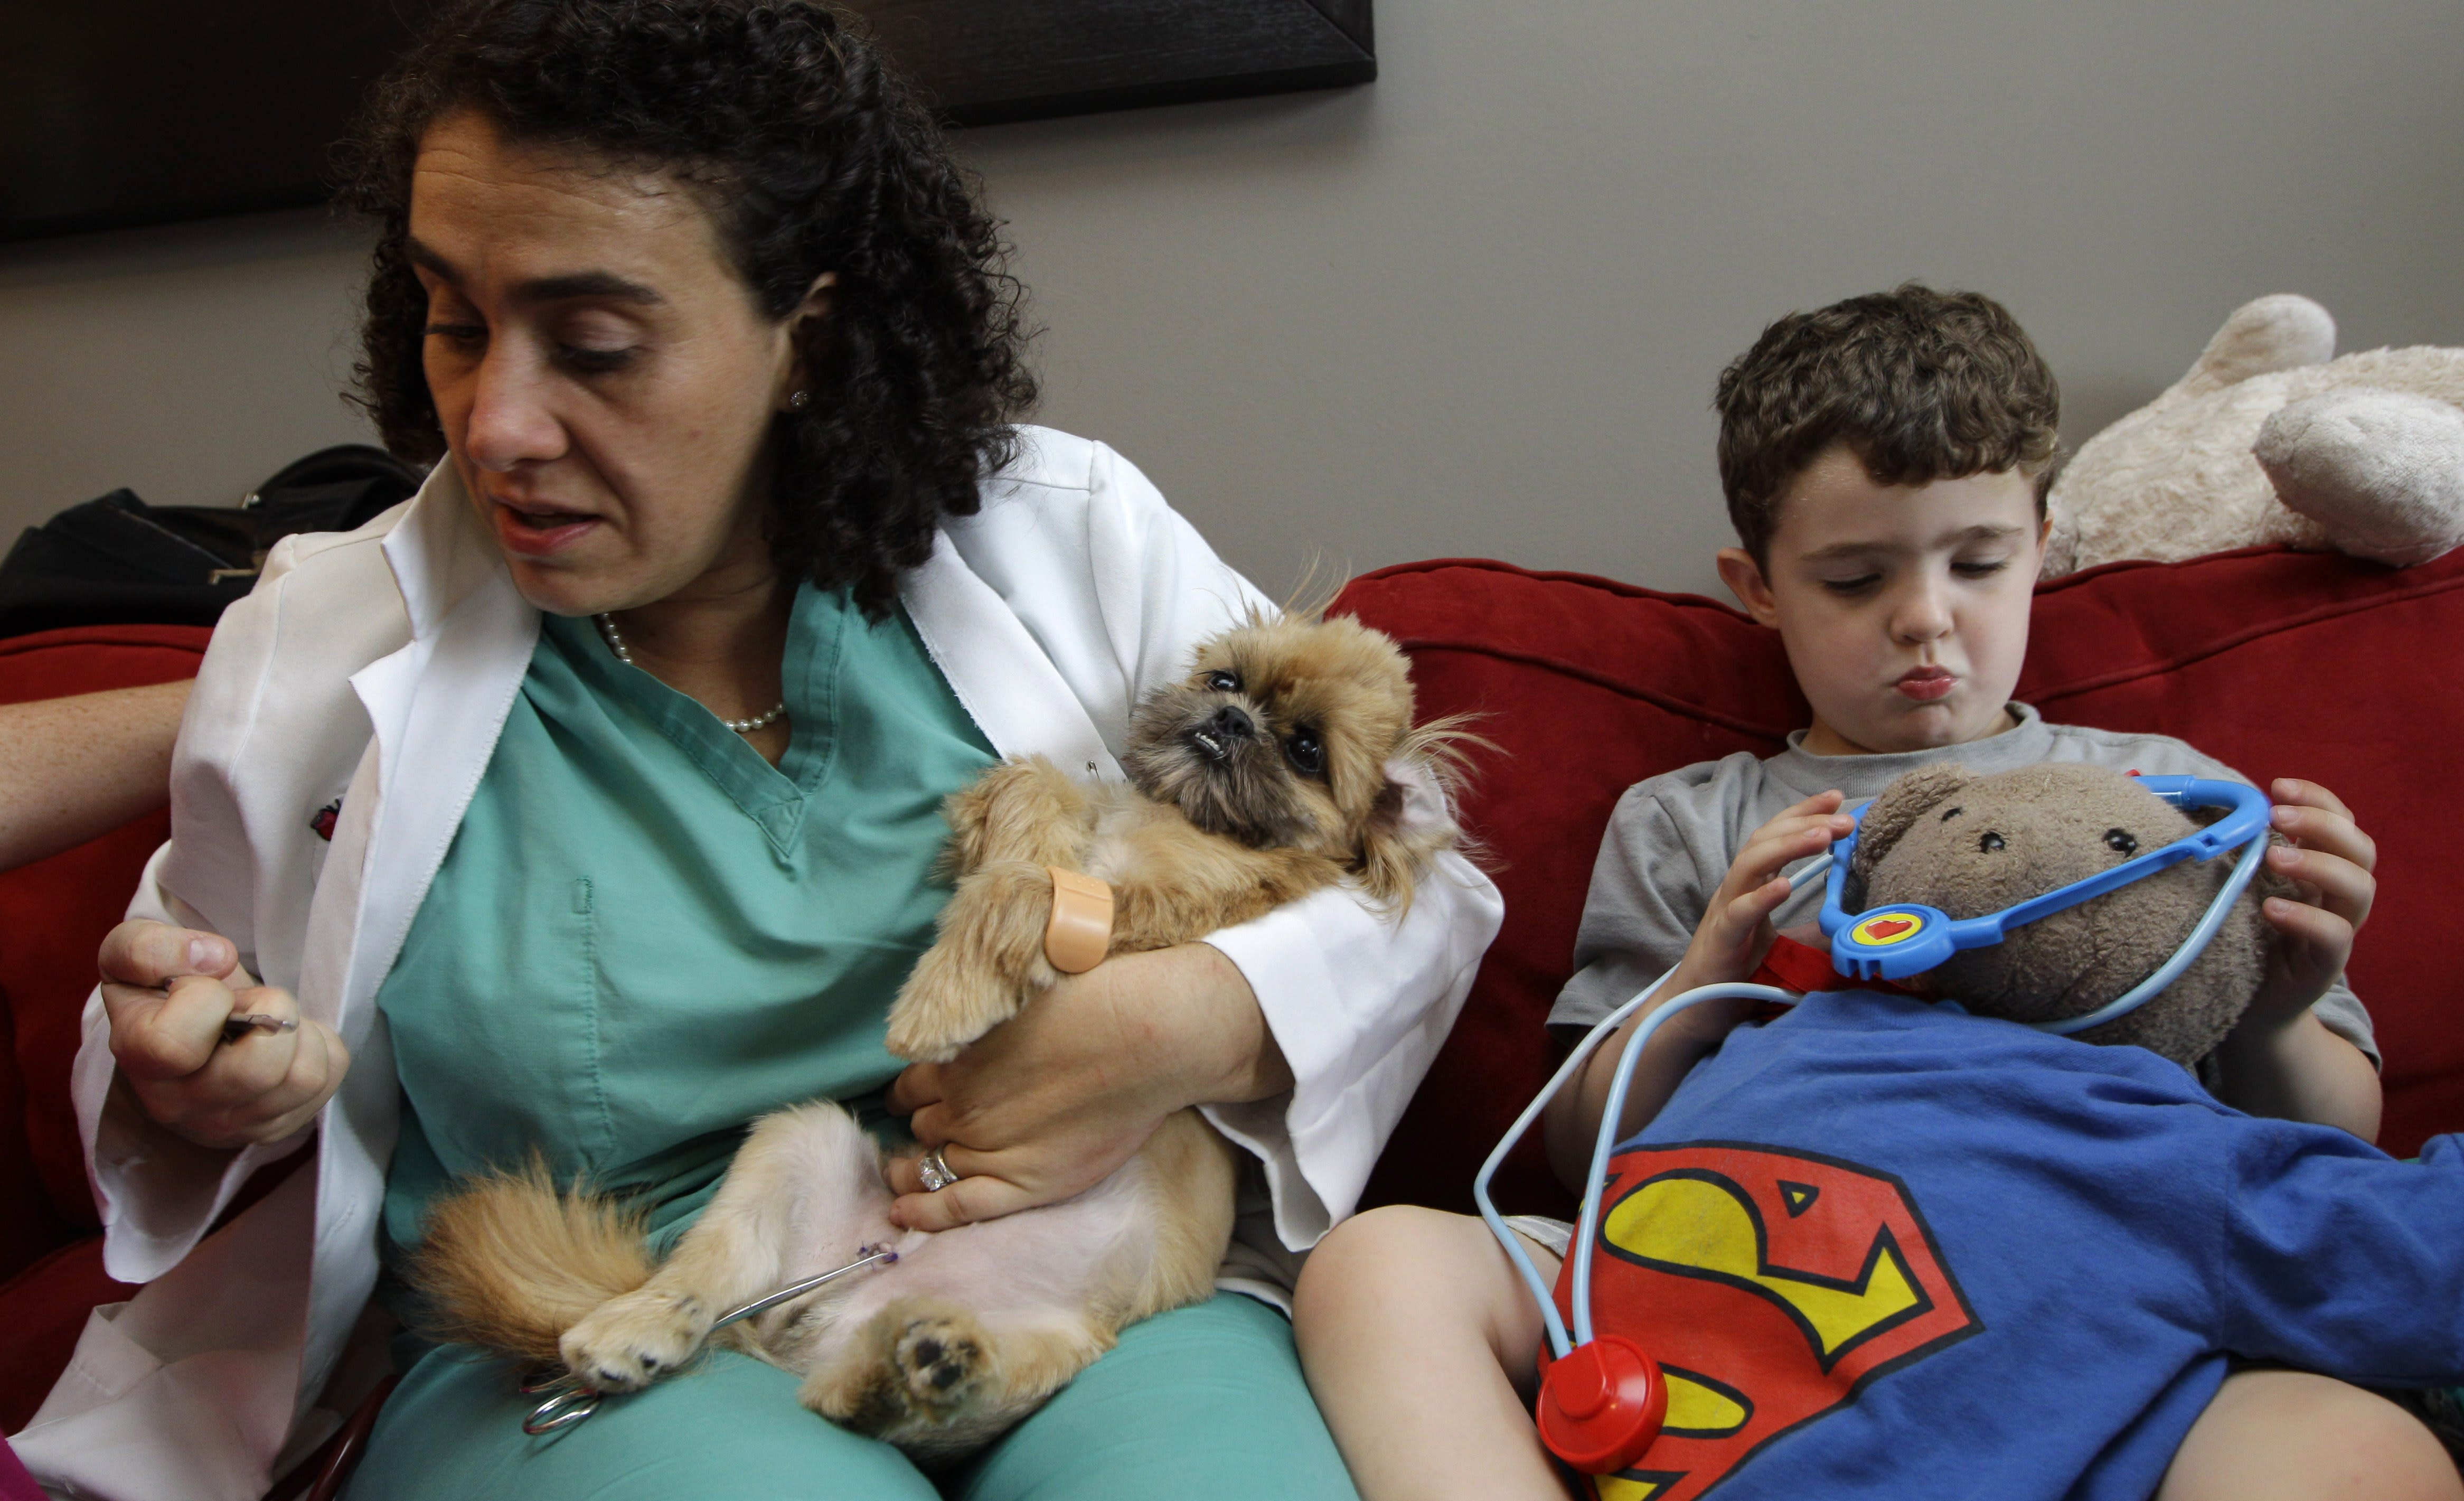 Veterinarian Elisabeth Coletti, left, inspects stitches she just removed from Pooch, a family Shih Tzu that had recently been neutered, during a house call to the home of Erin McCarthy and husband Patrick Petrillo in New York, Thursday, Aug. 9, 2012, as son Sullivan Petrillo tends to his own teddy bear with a toy stethoscope. Coletti is part of a growing trend of family veterinarian that make house calls. (AP Photo/Kathy Willens)